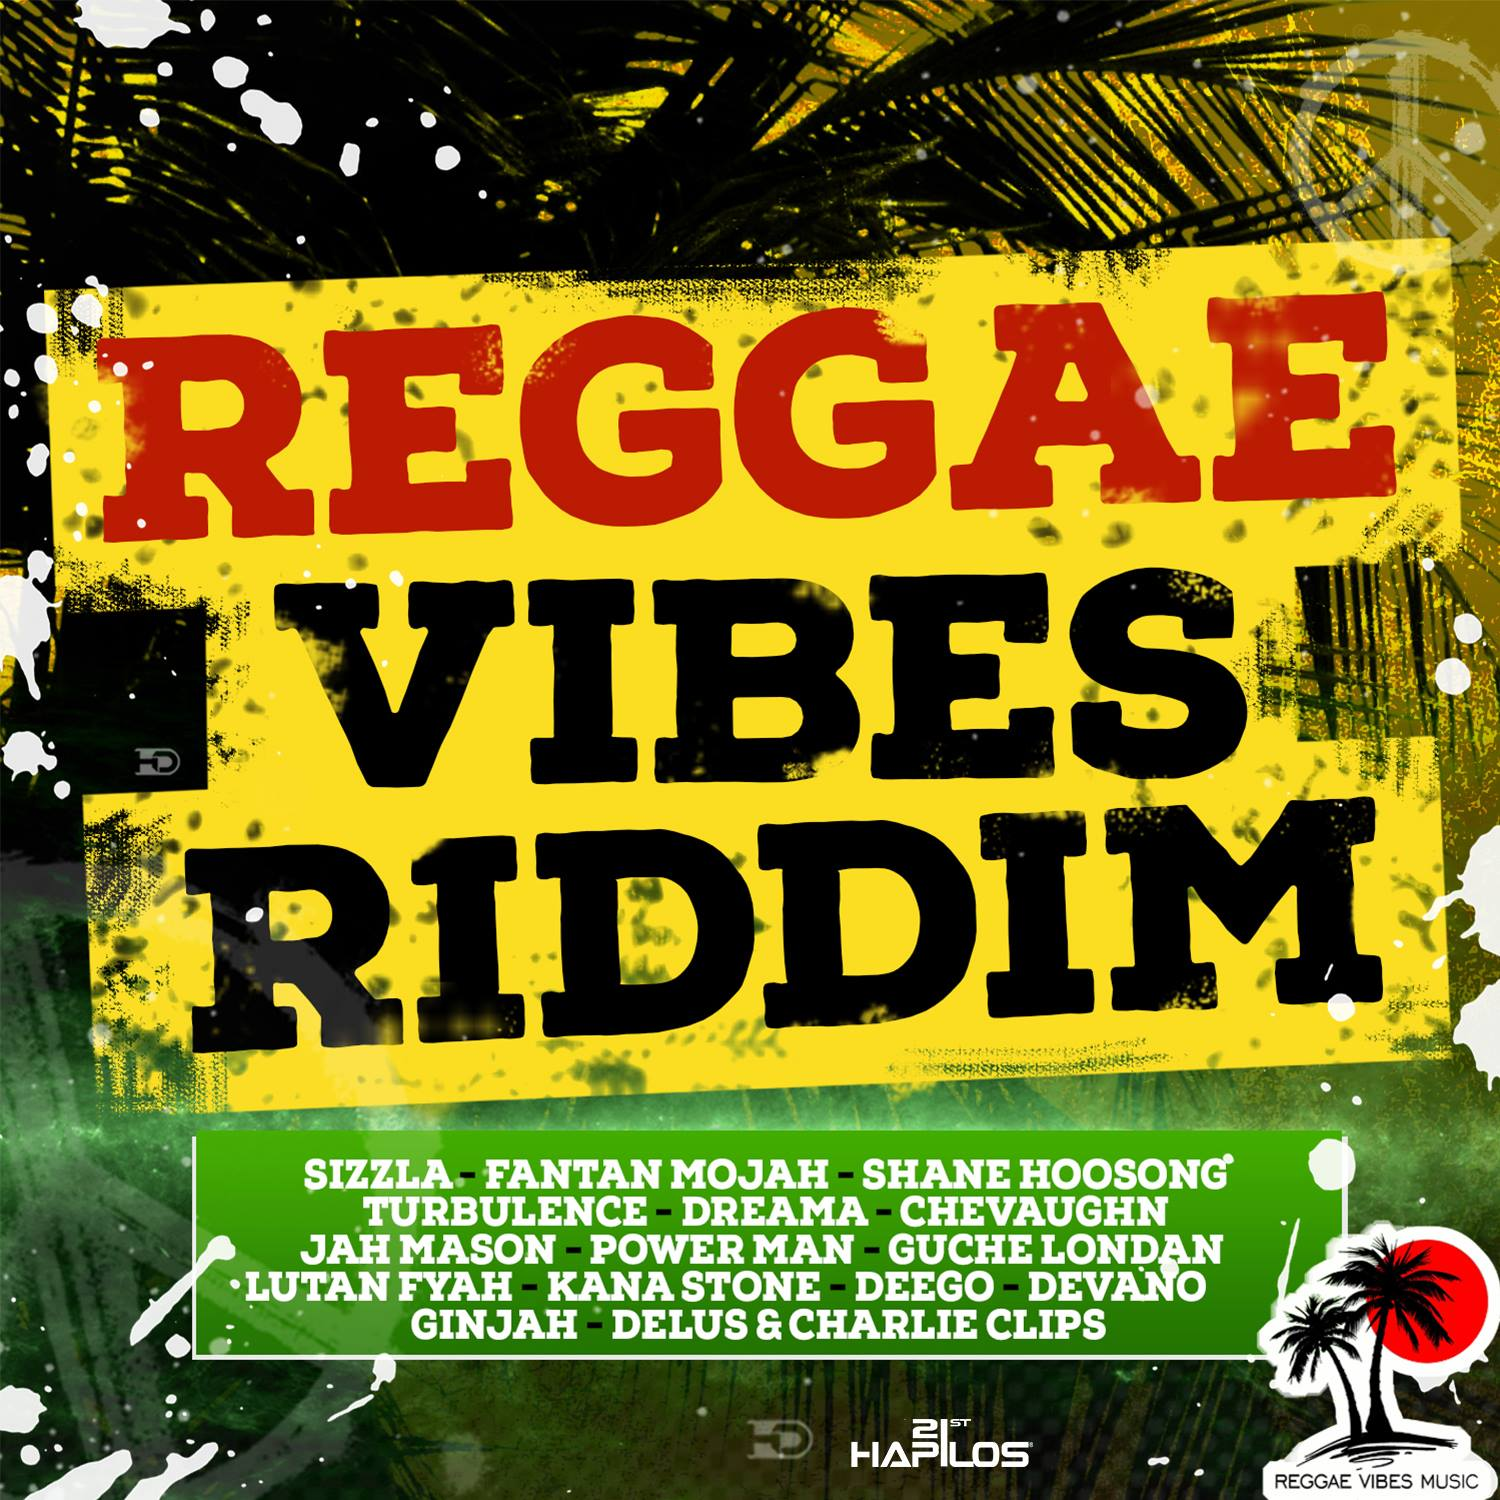 Highlanda.net review of The Reggae Vibes Riddim